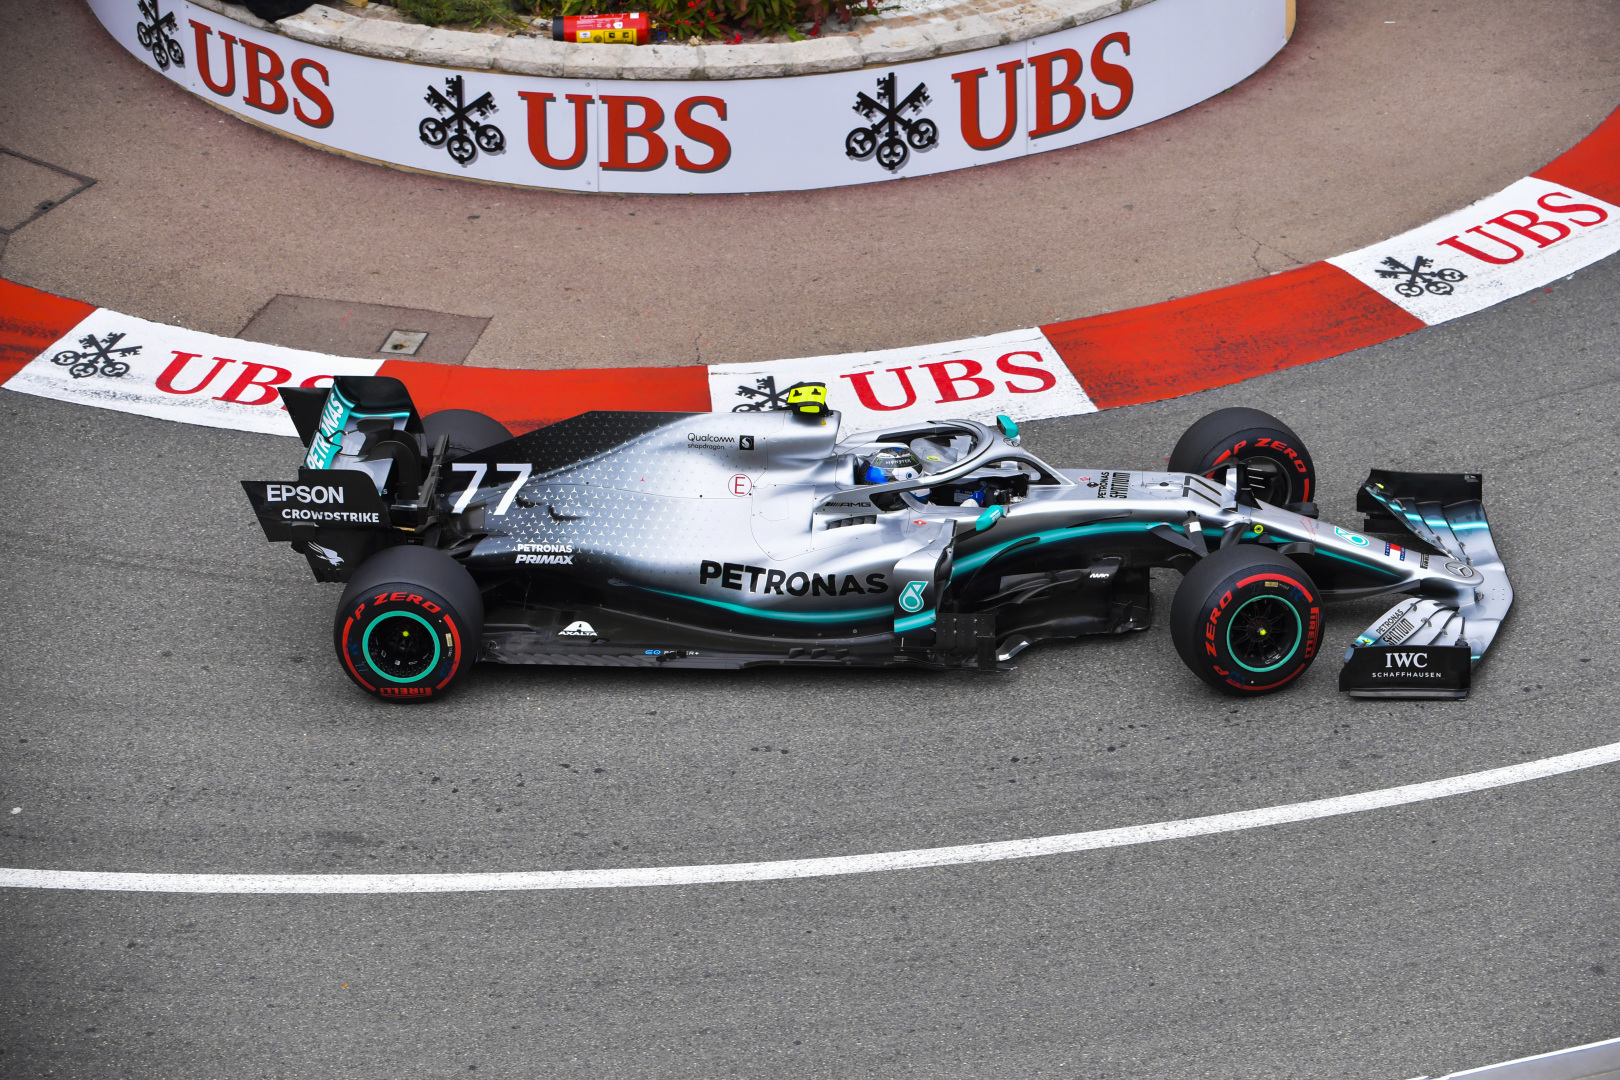 'Gutted' Bottas will emerge stronger from Monaco defeat